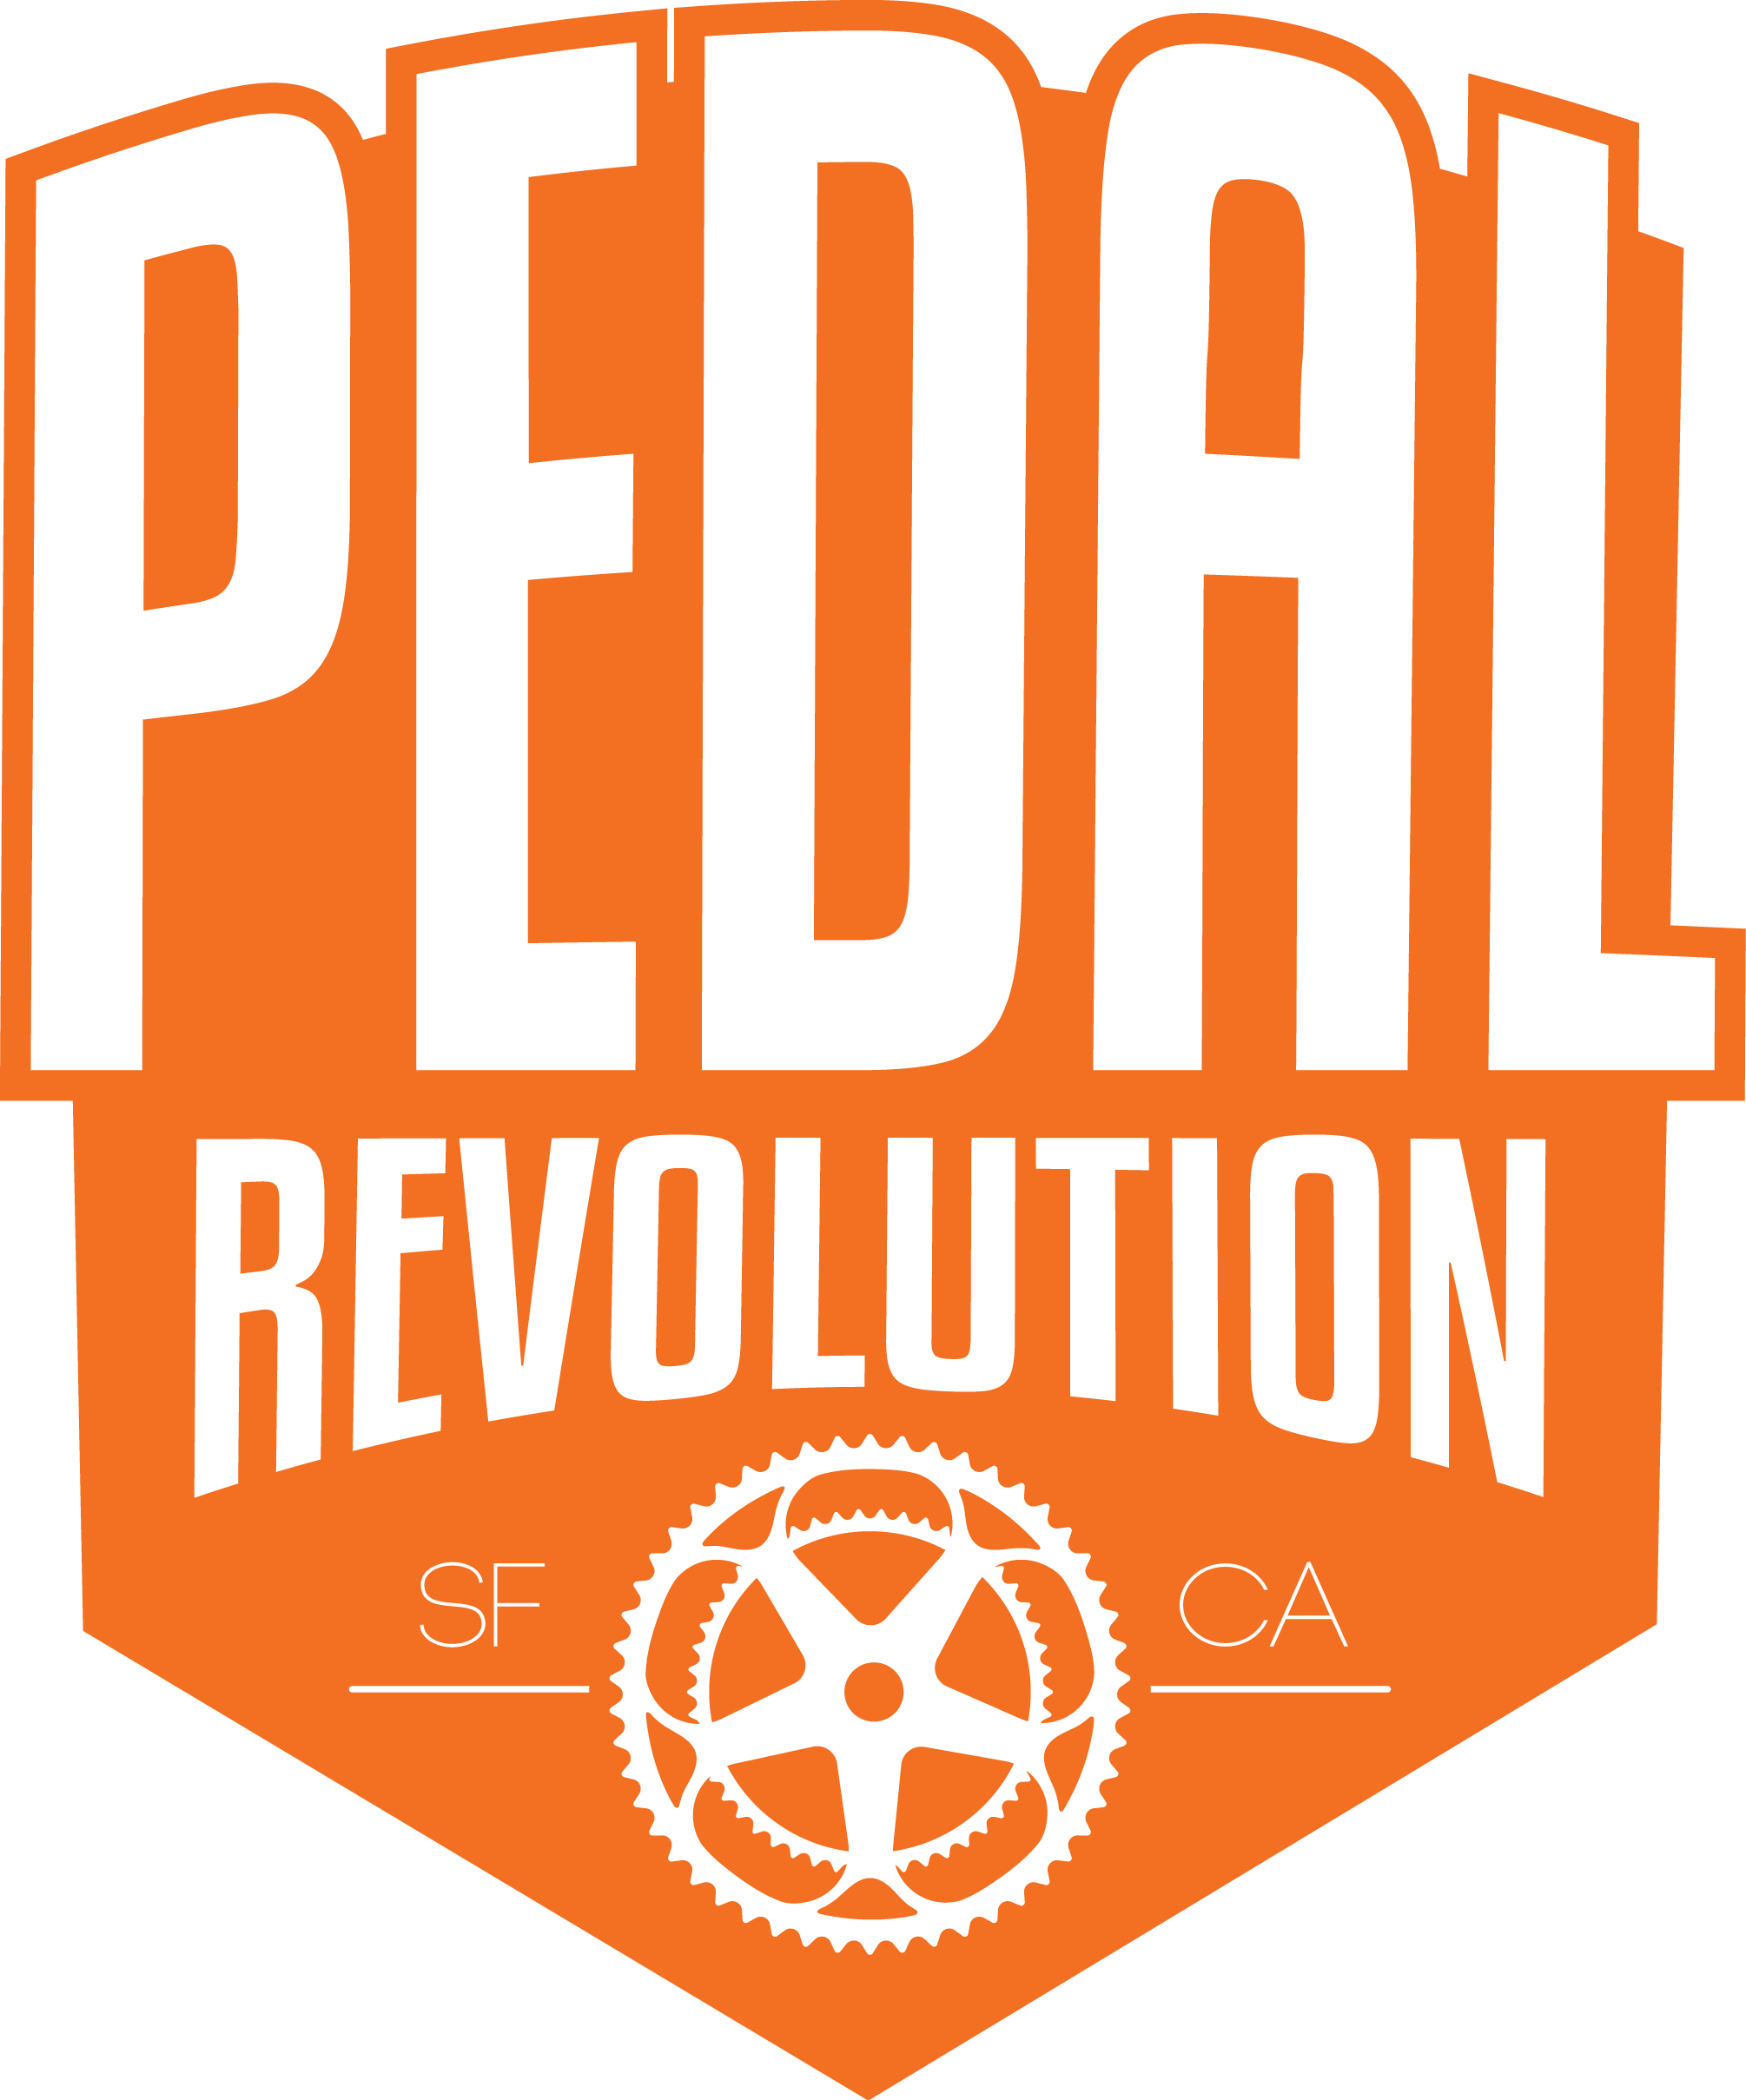 Wanted transparent mechanic. Pedal revolution blog archive